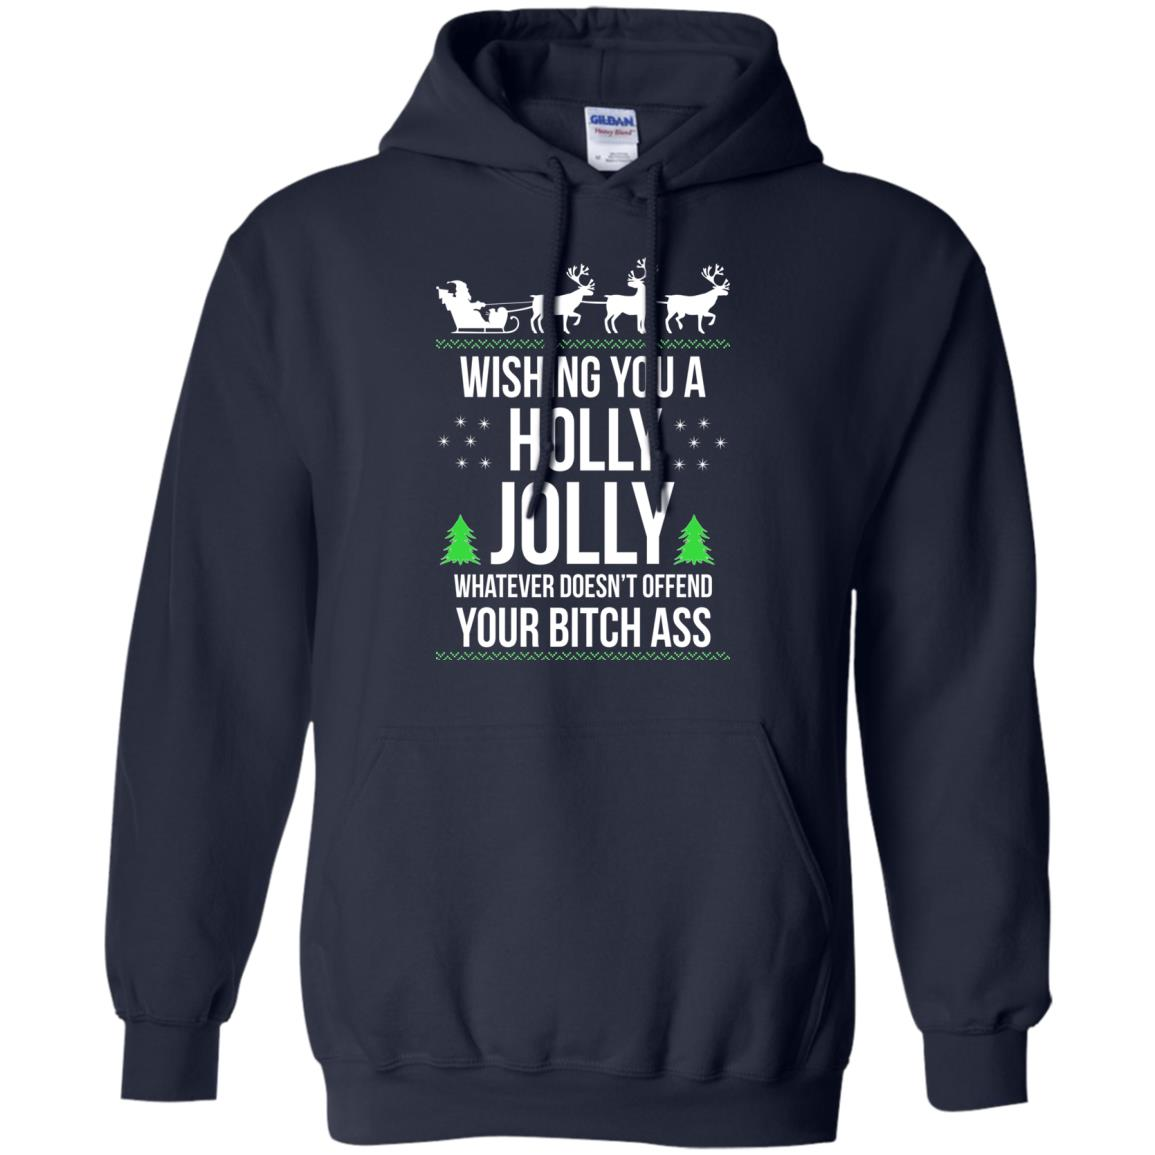 image 1186 - Wishing you a holly jolly whatever doesn't offend your bitch ass sweater, shirt